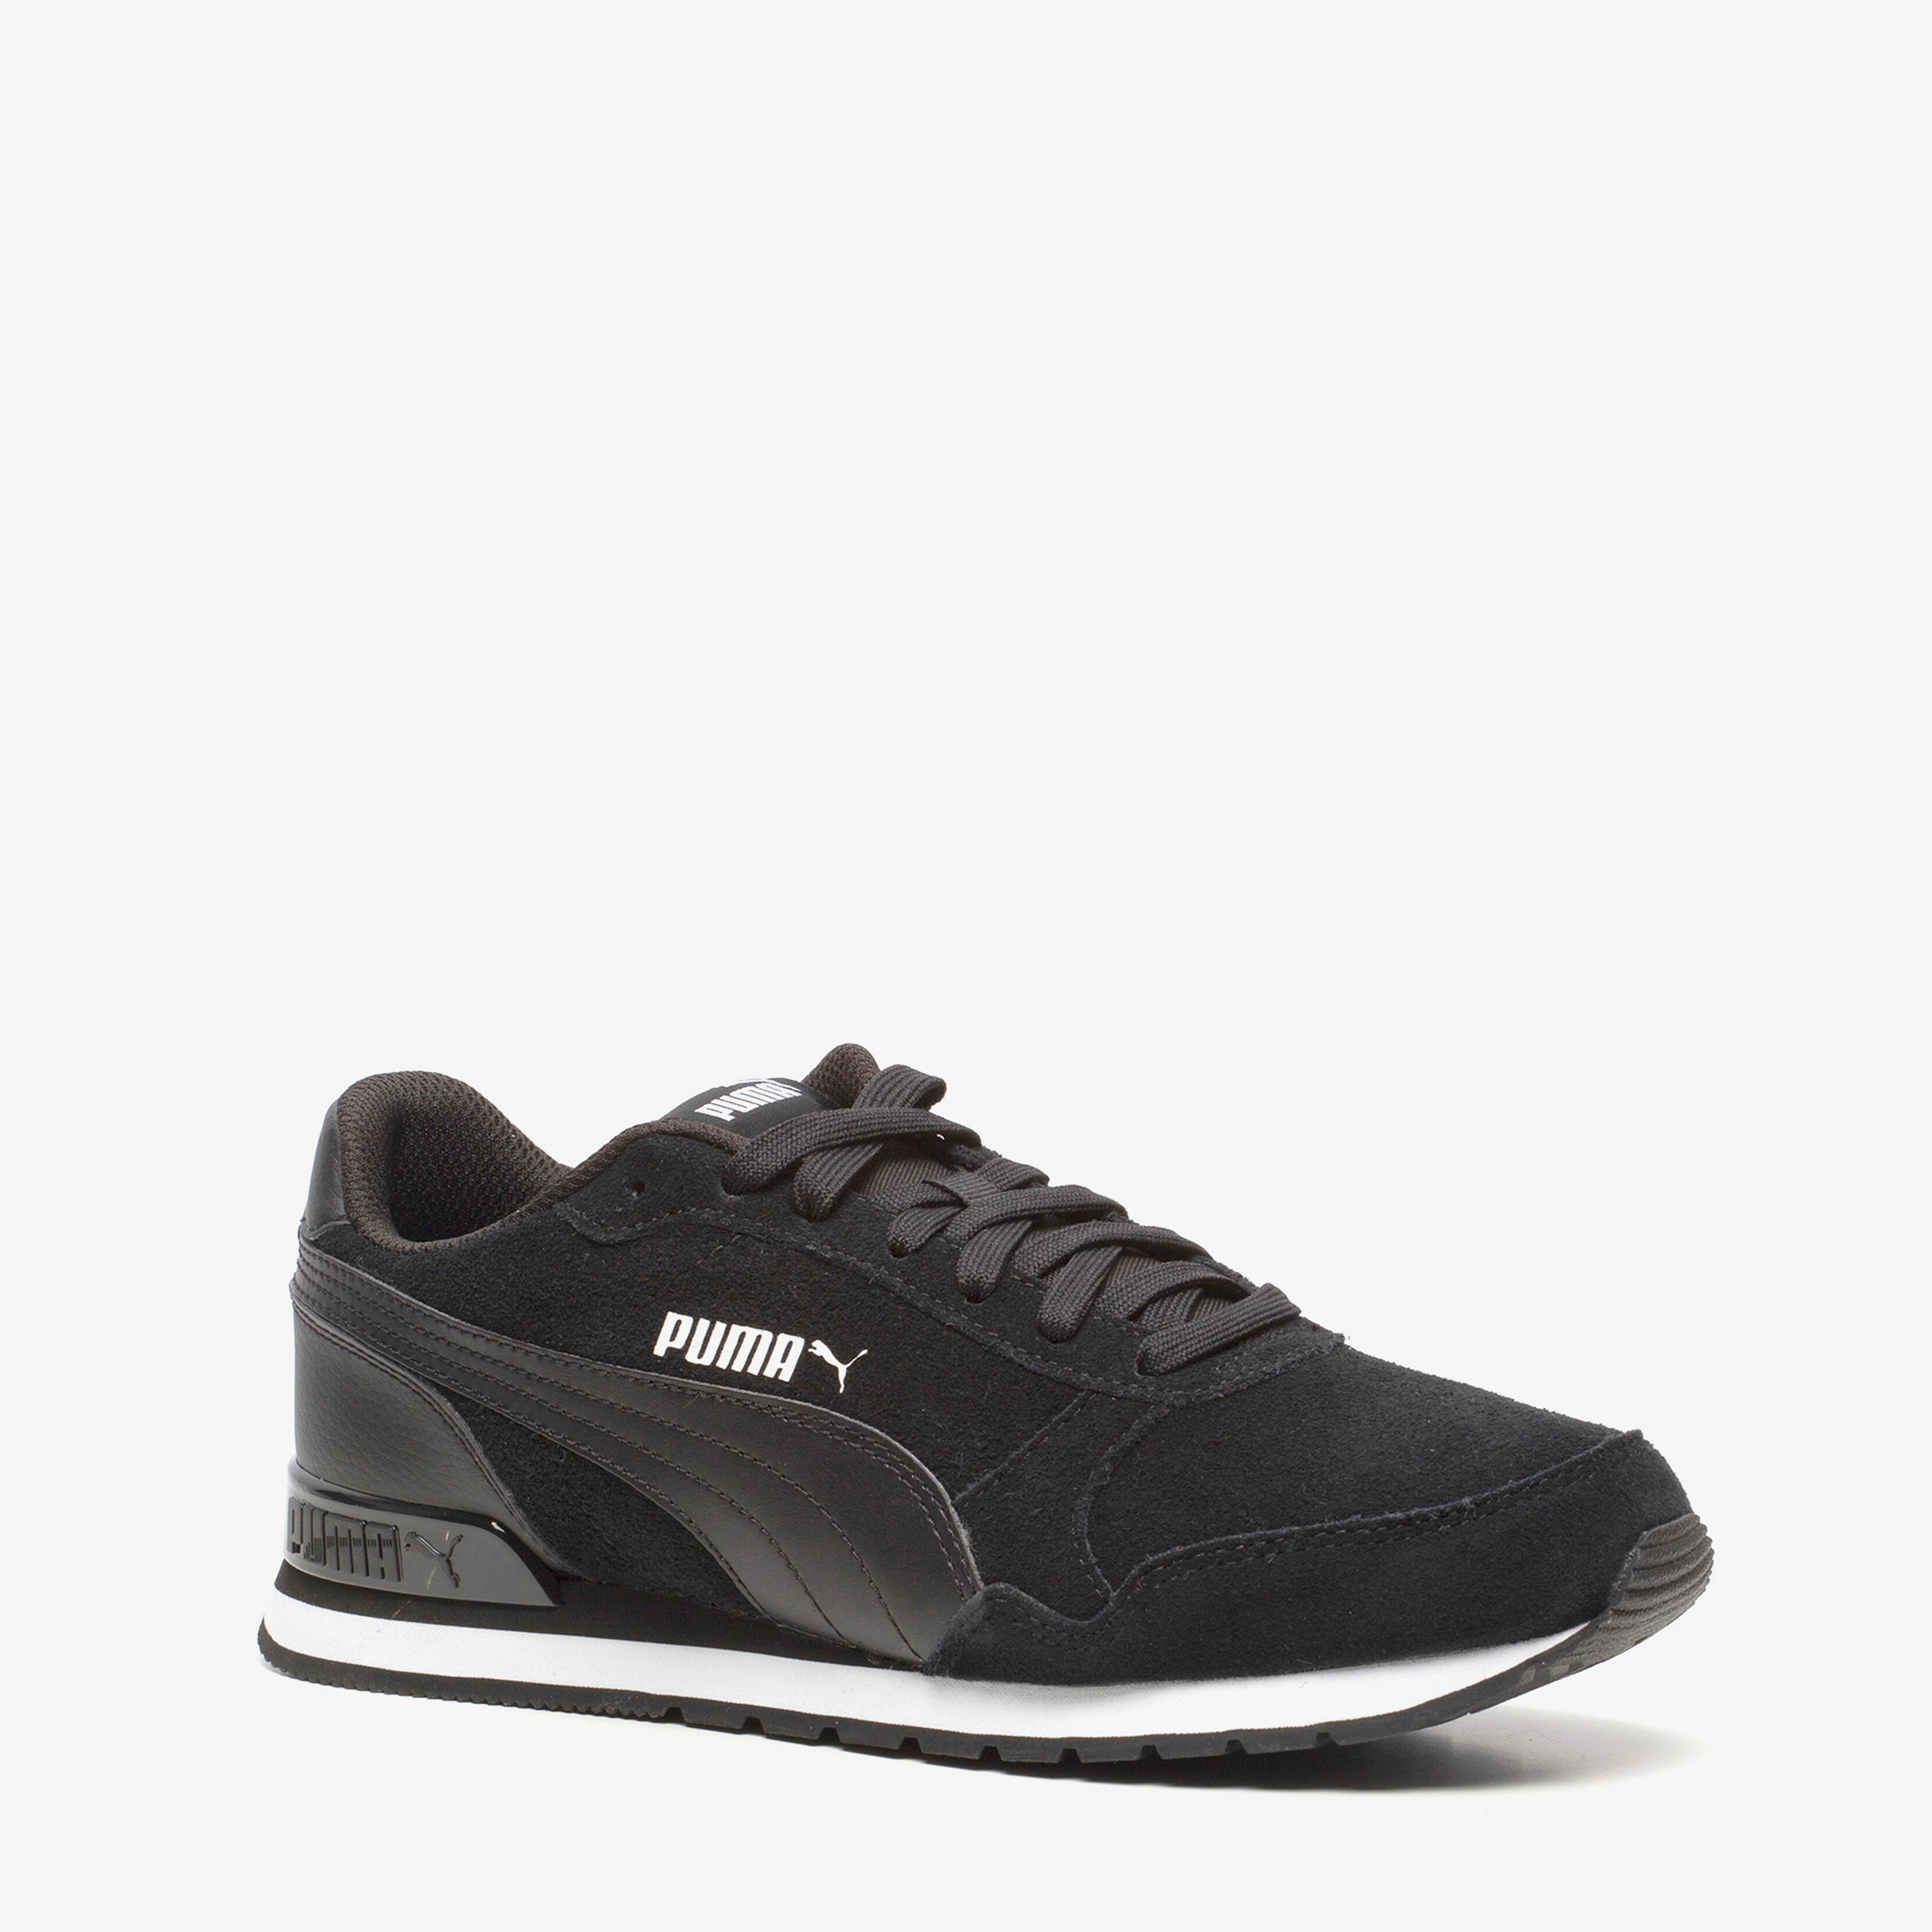 Puma ST Runner V2 SD dames sneakers | Scapino.nl